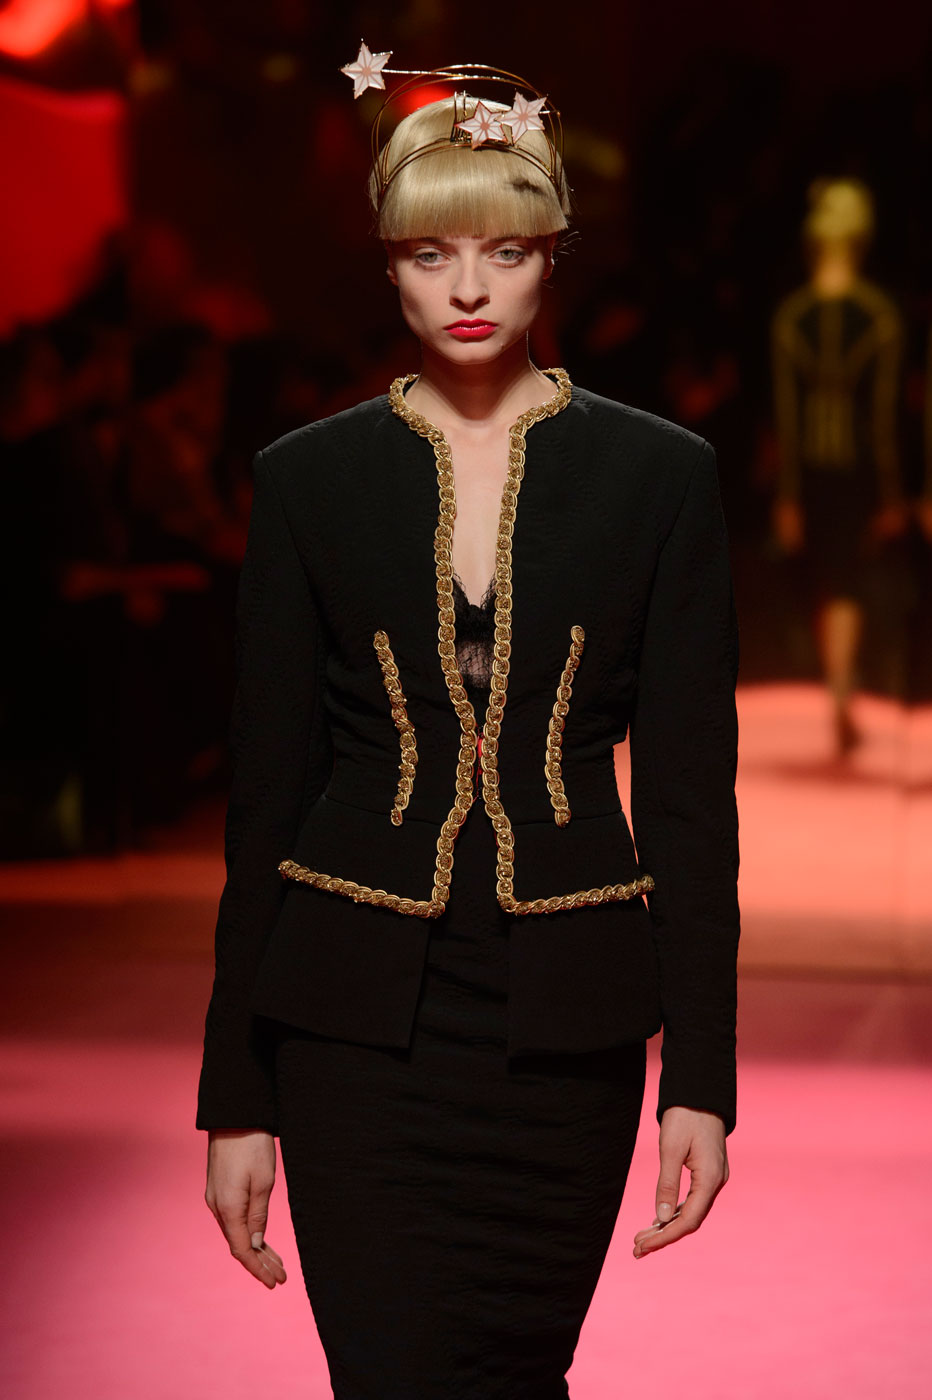 Schiaparelli-fashion-runway-show-haute-couture-paris-spring-summer-2015-the-impression-20